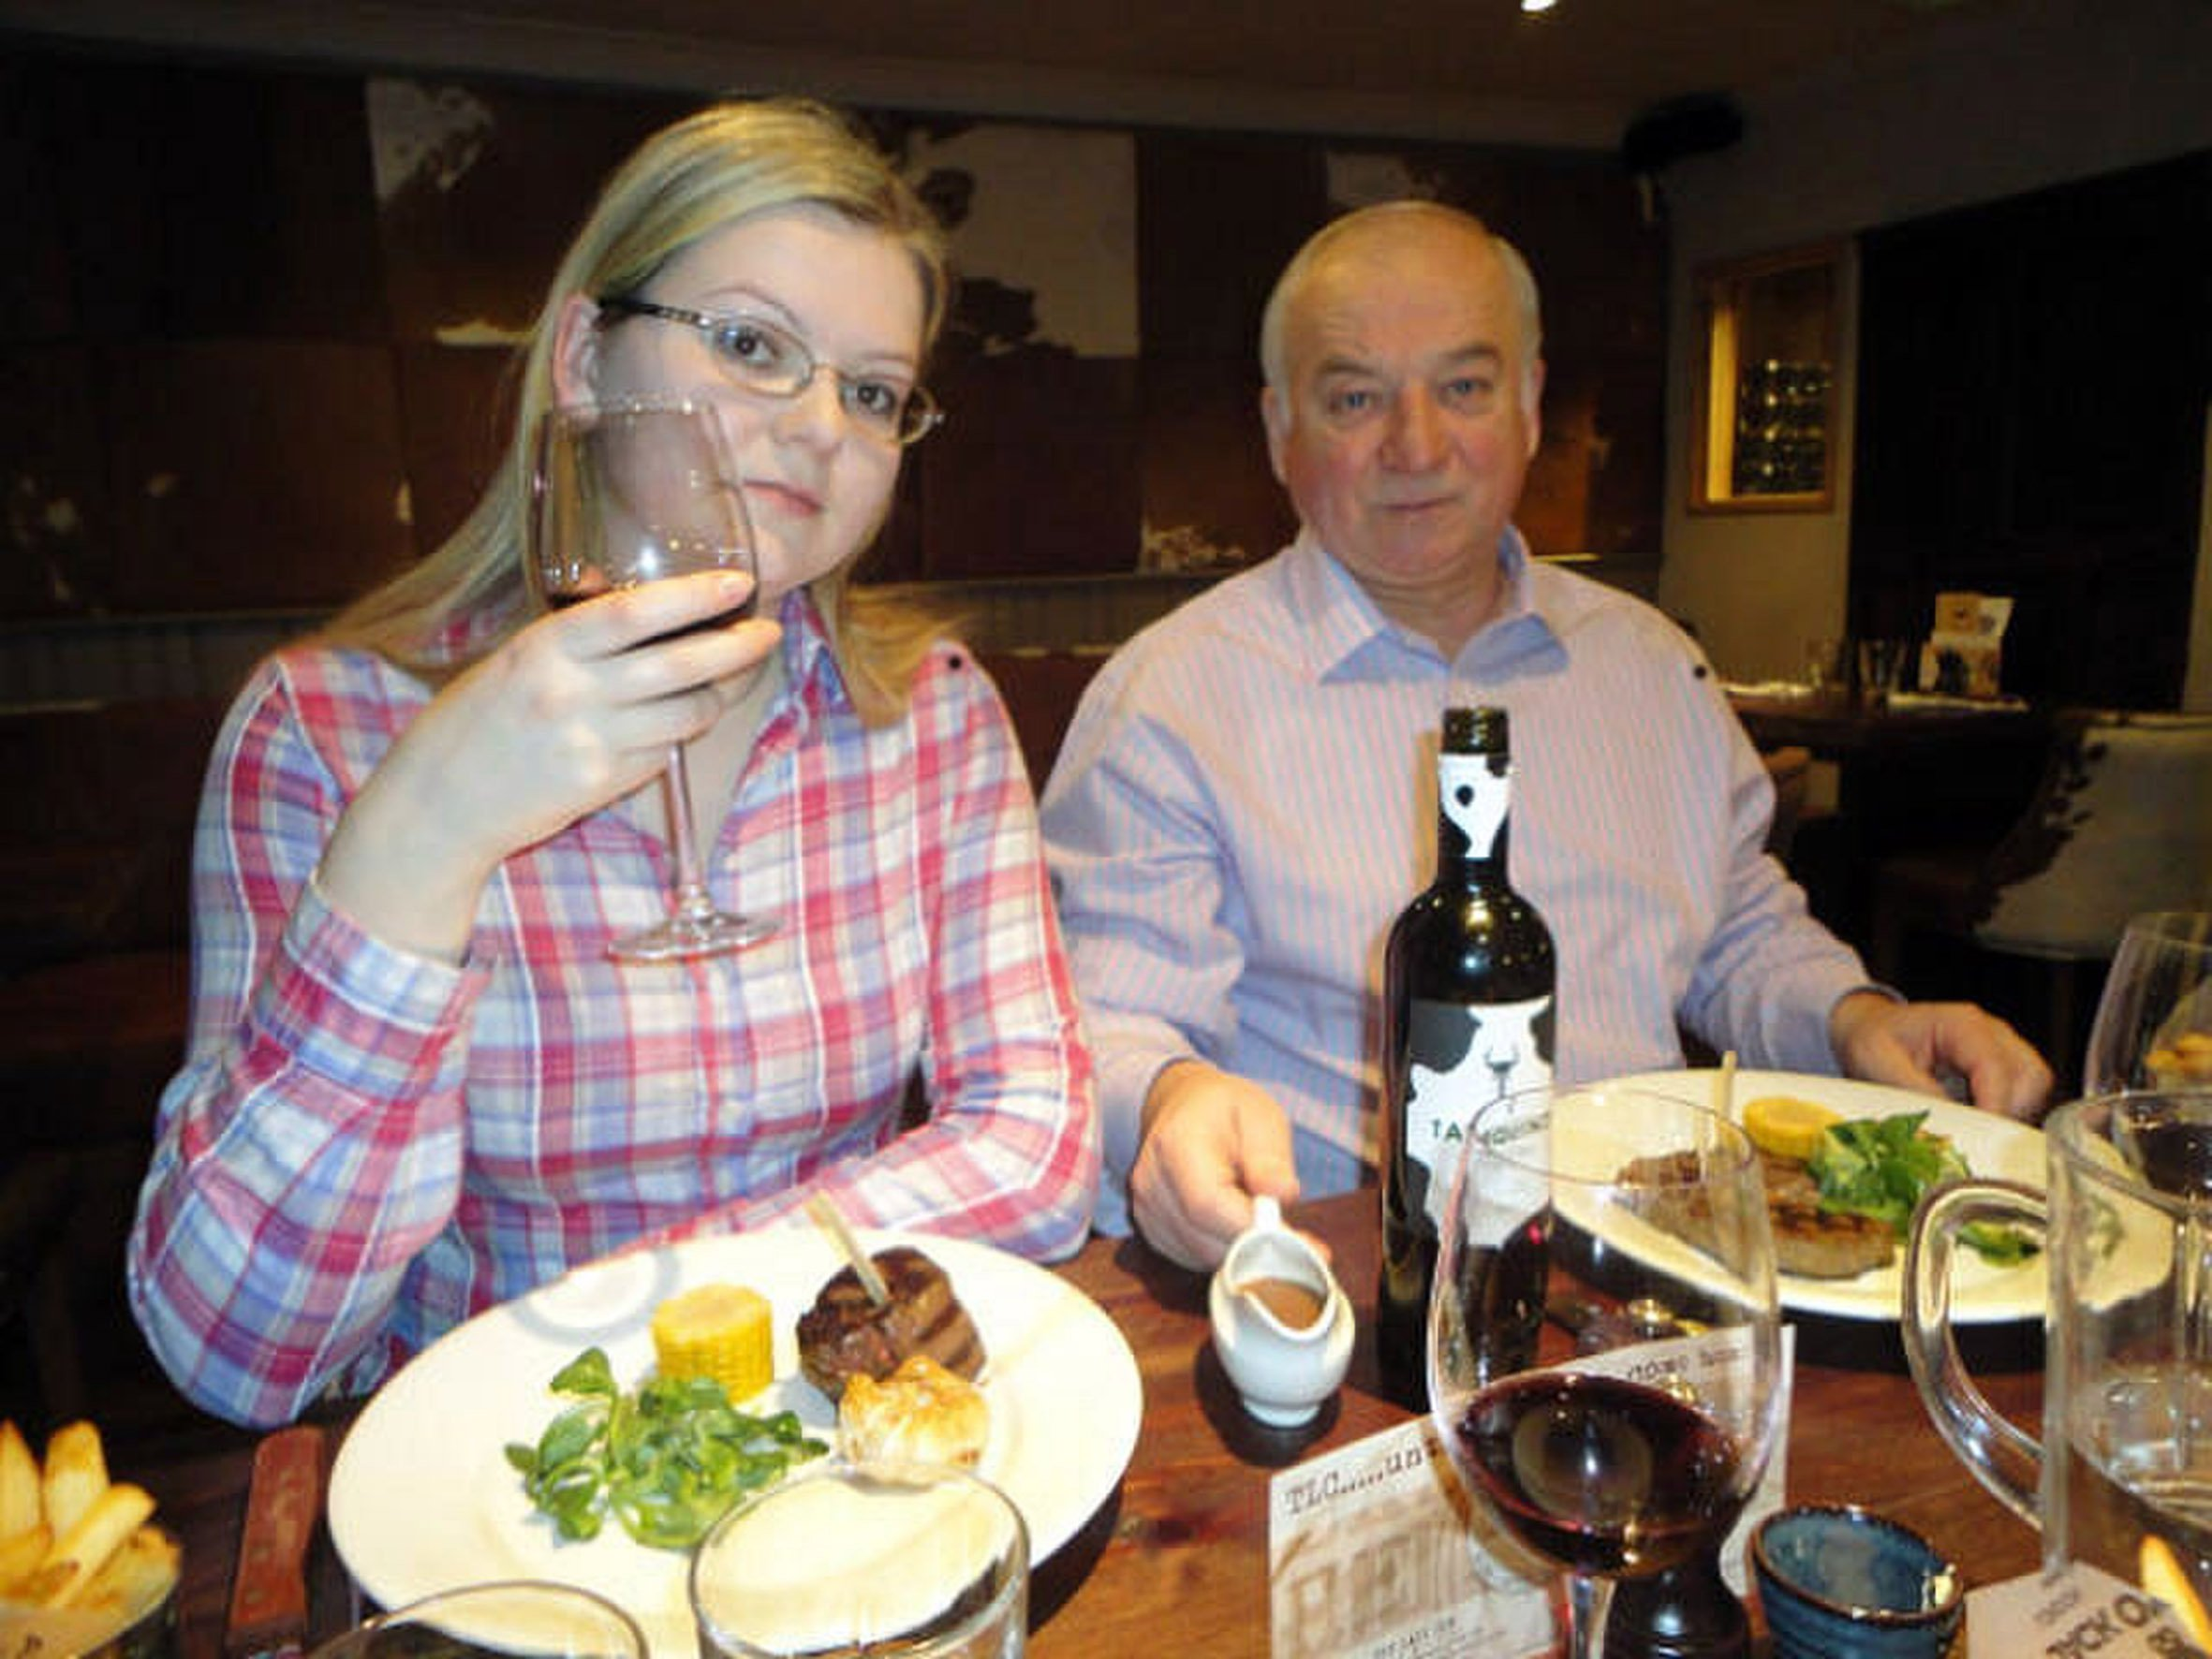 Poisoned spy's daughter Yulia Skripal discharged from hospital and taken to a secure location